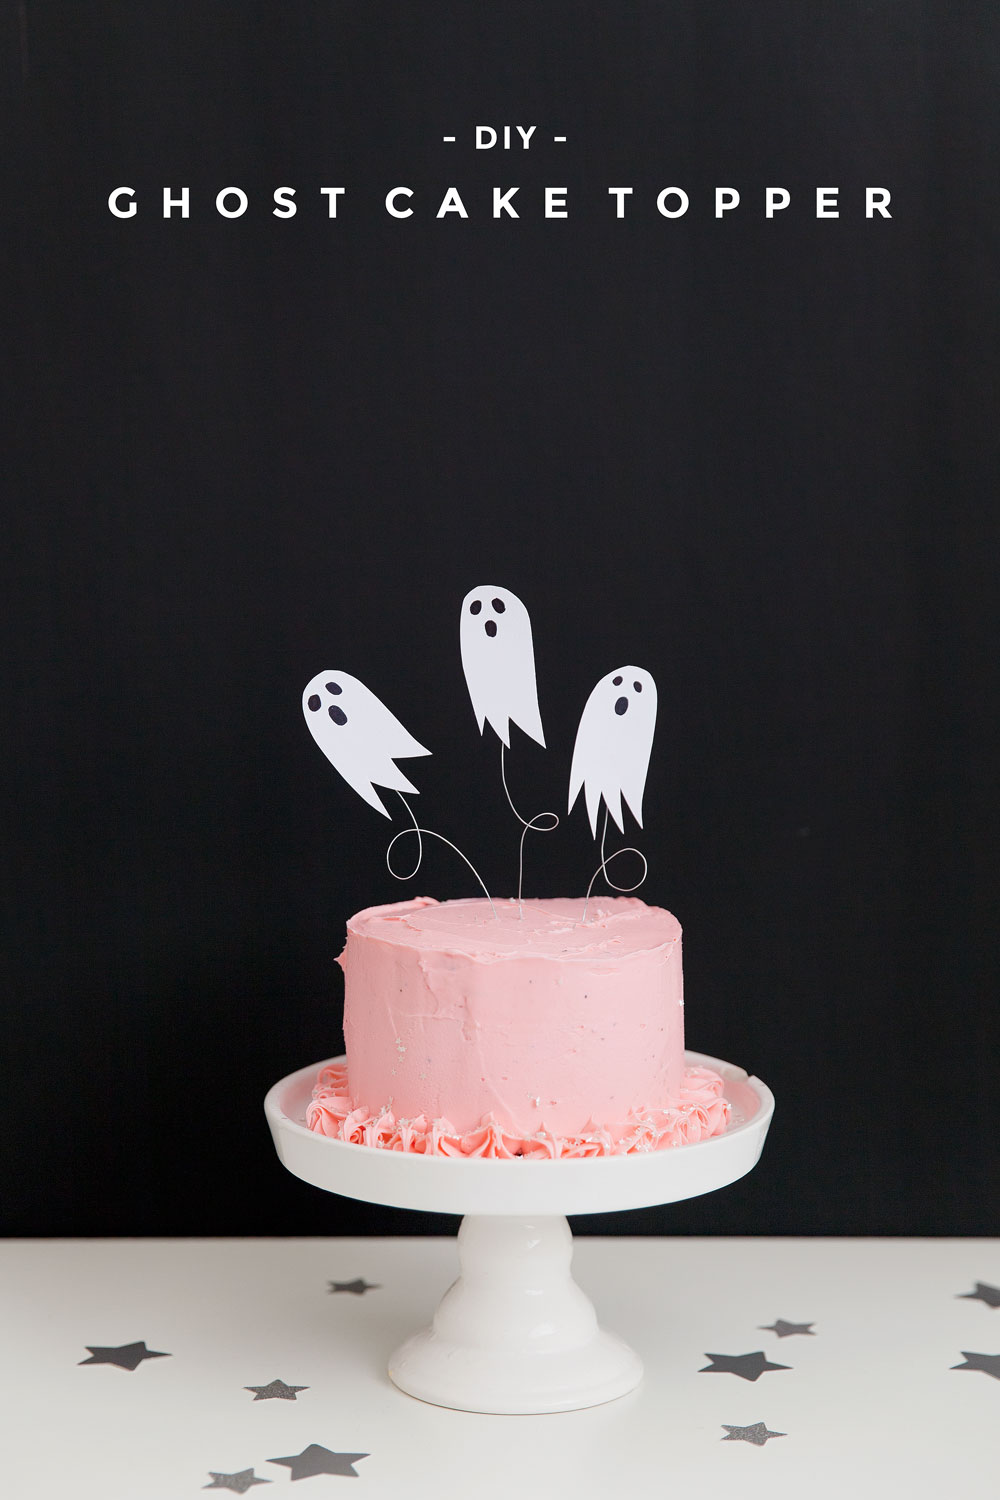 Need a simple DIY for all your upcoming Halloween parties? Well this is it! This DIY ghost cake topper is so simple to make and sure to please!